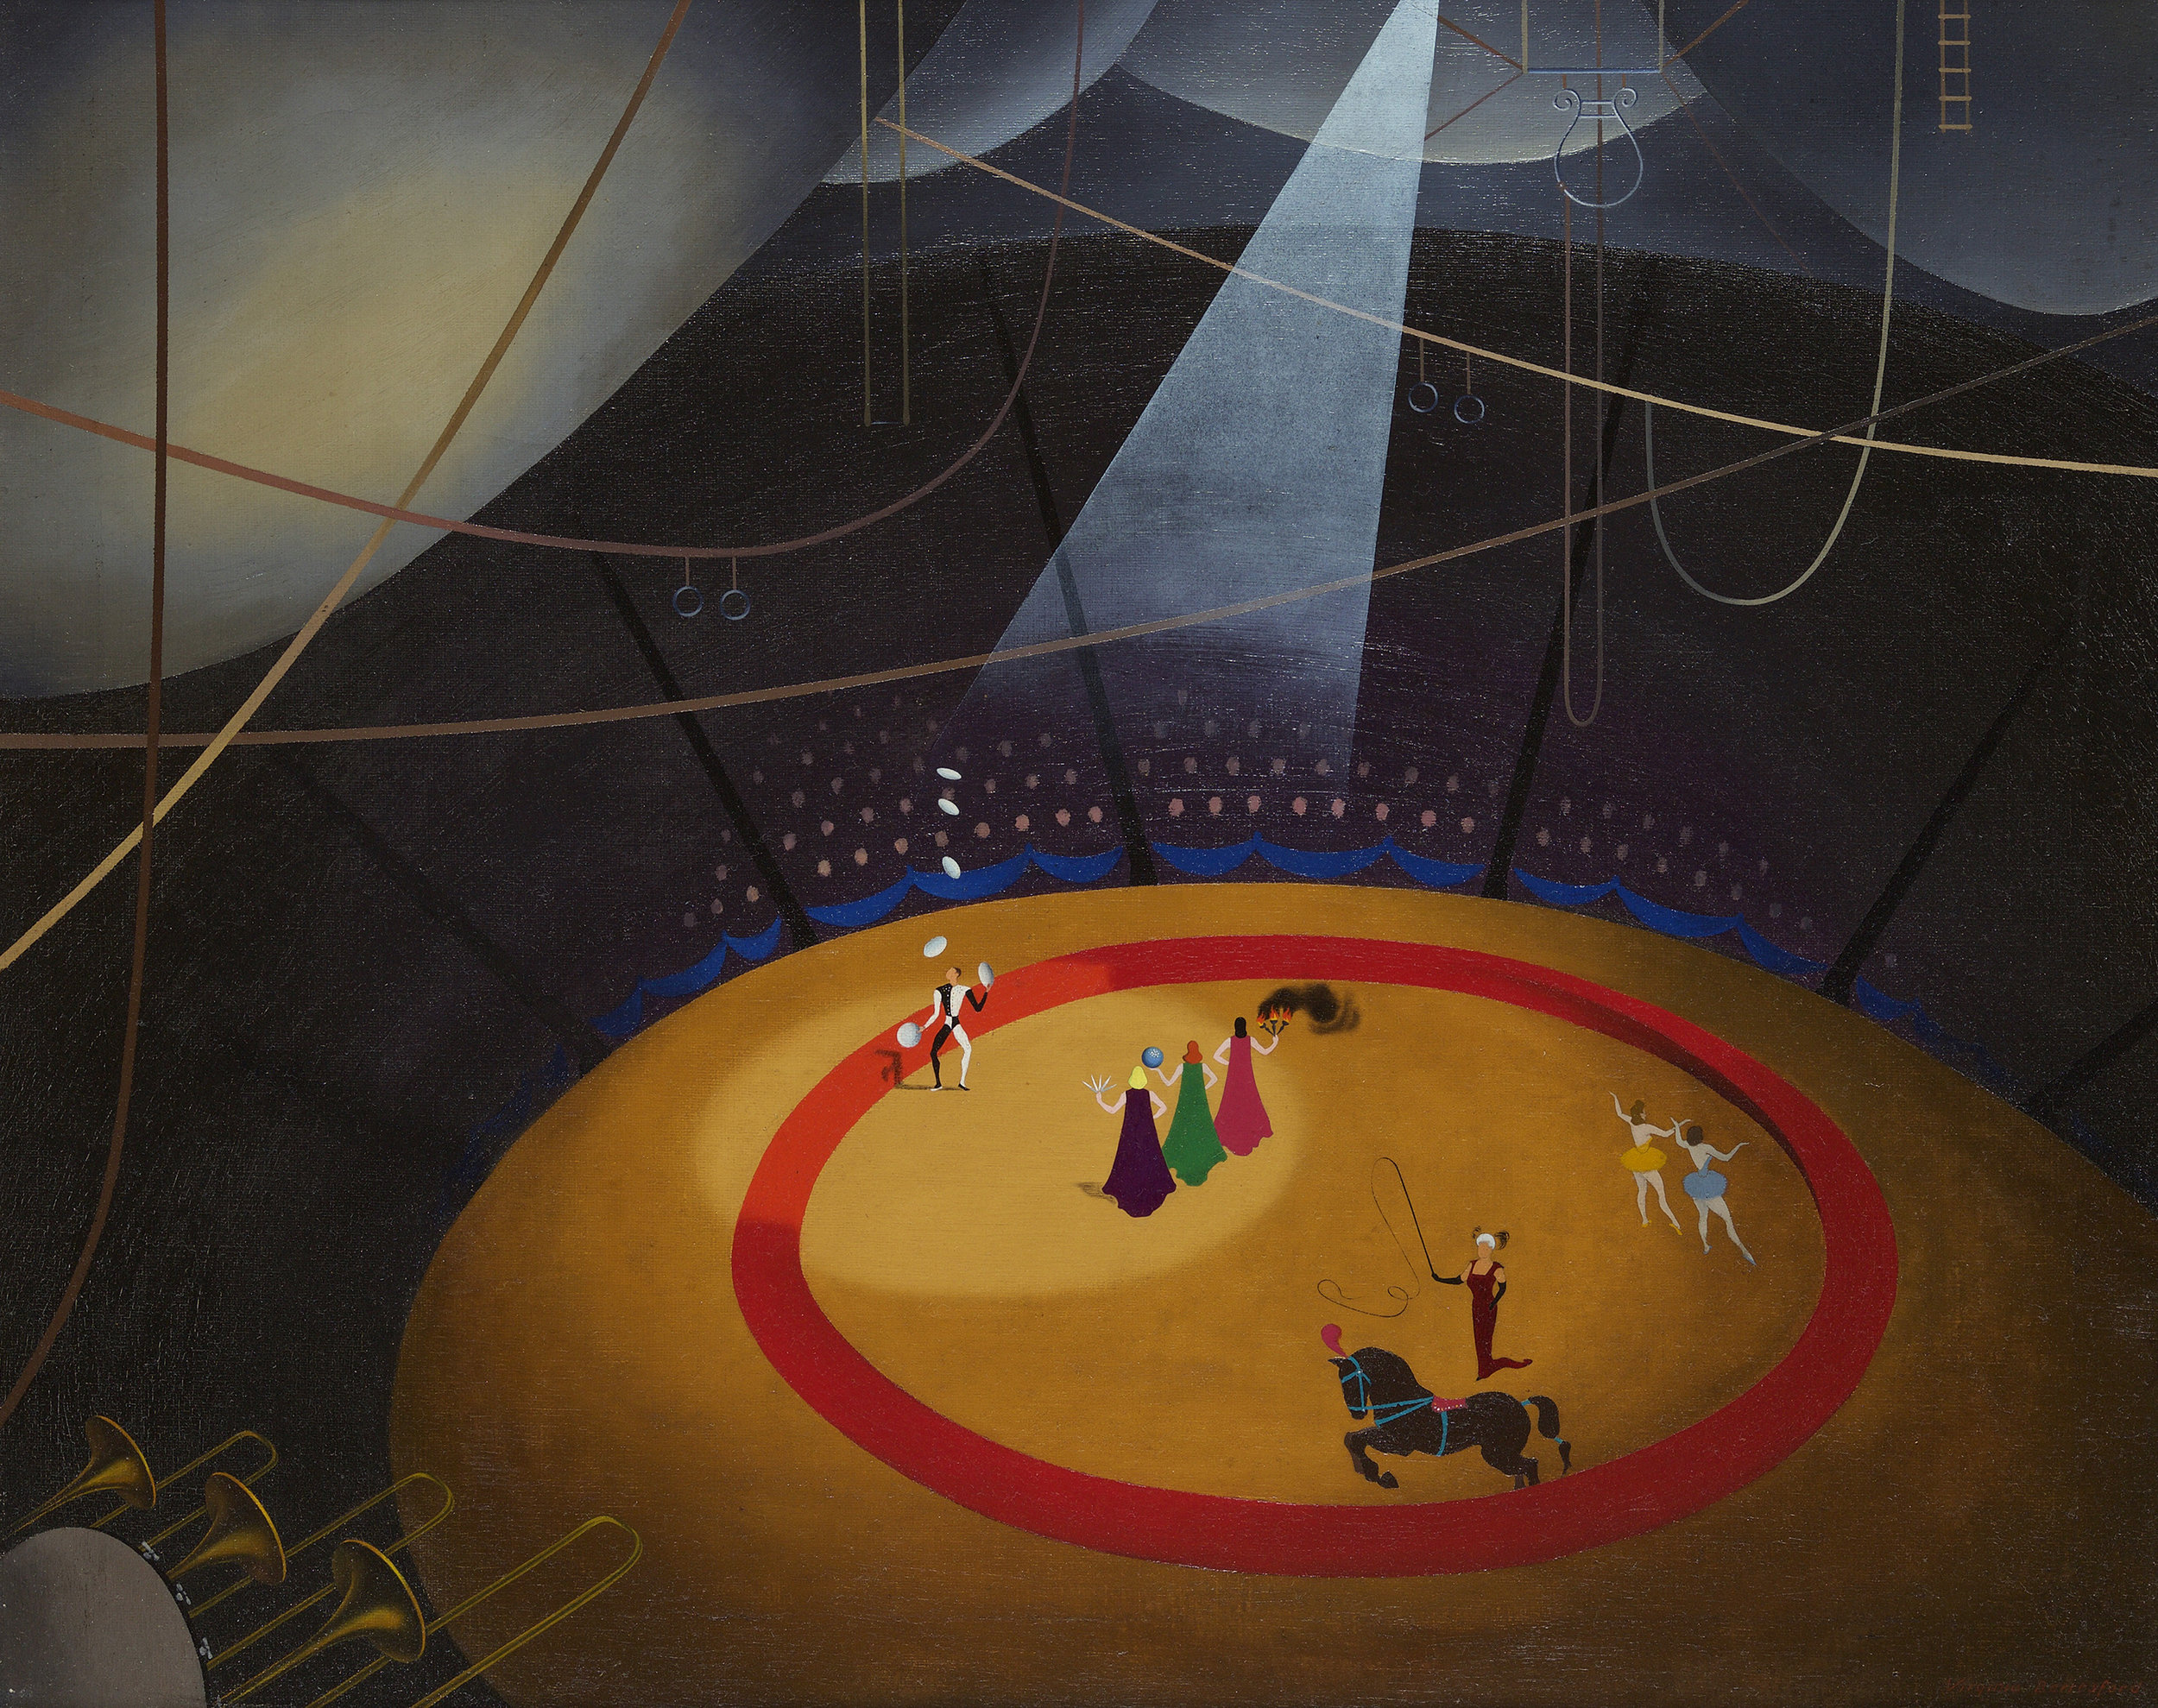 Drawing of circus with red ring in center, spotlight cast on figures in circle, ropes